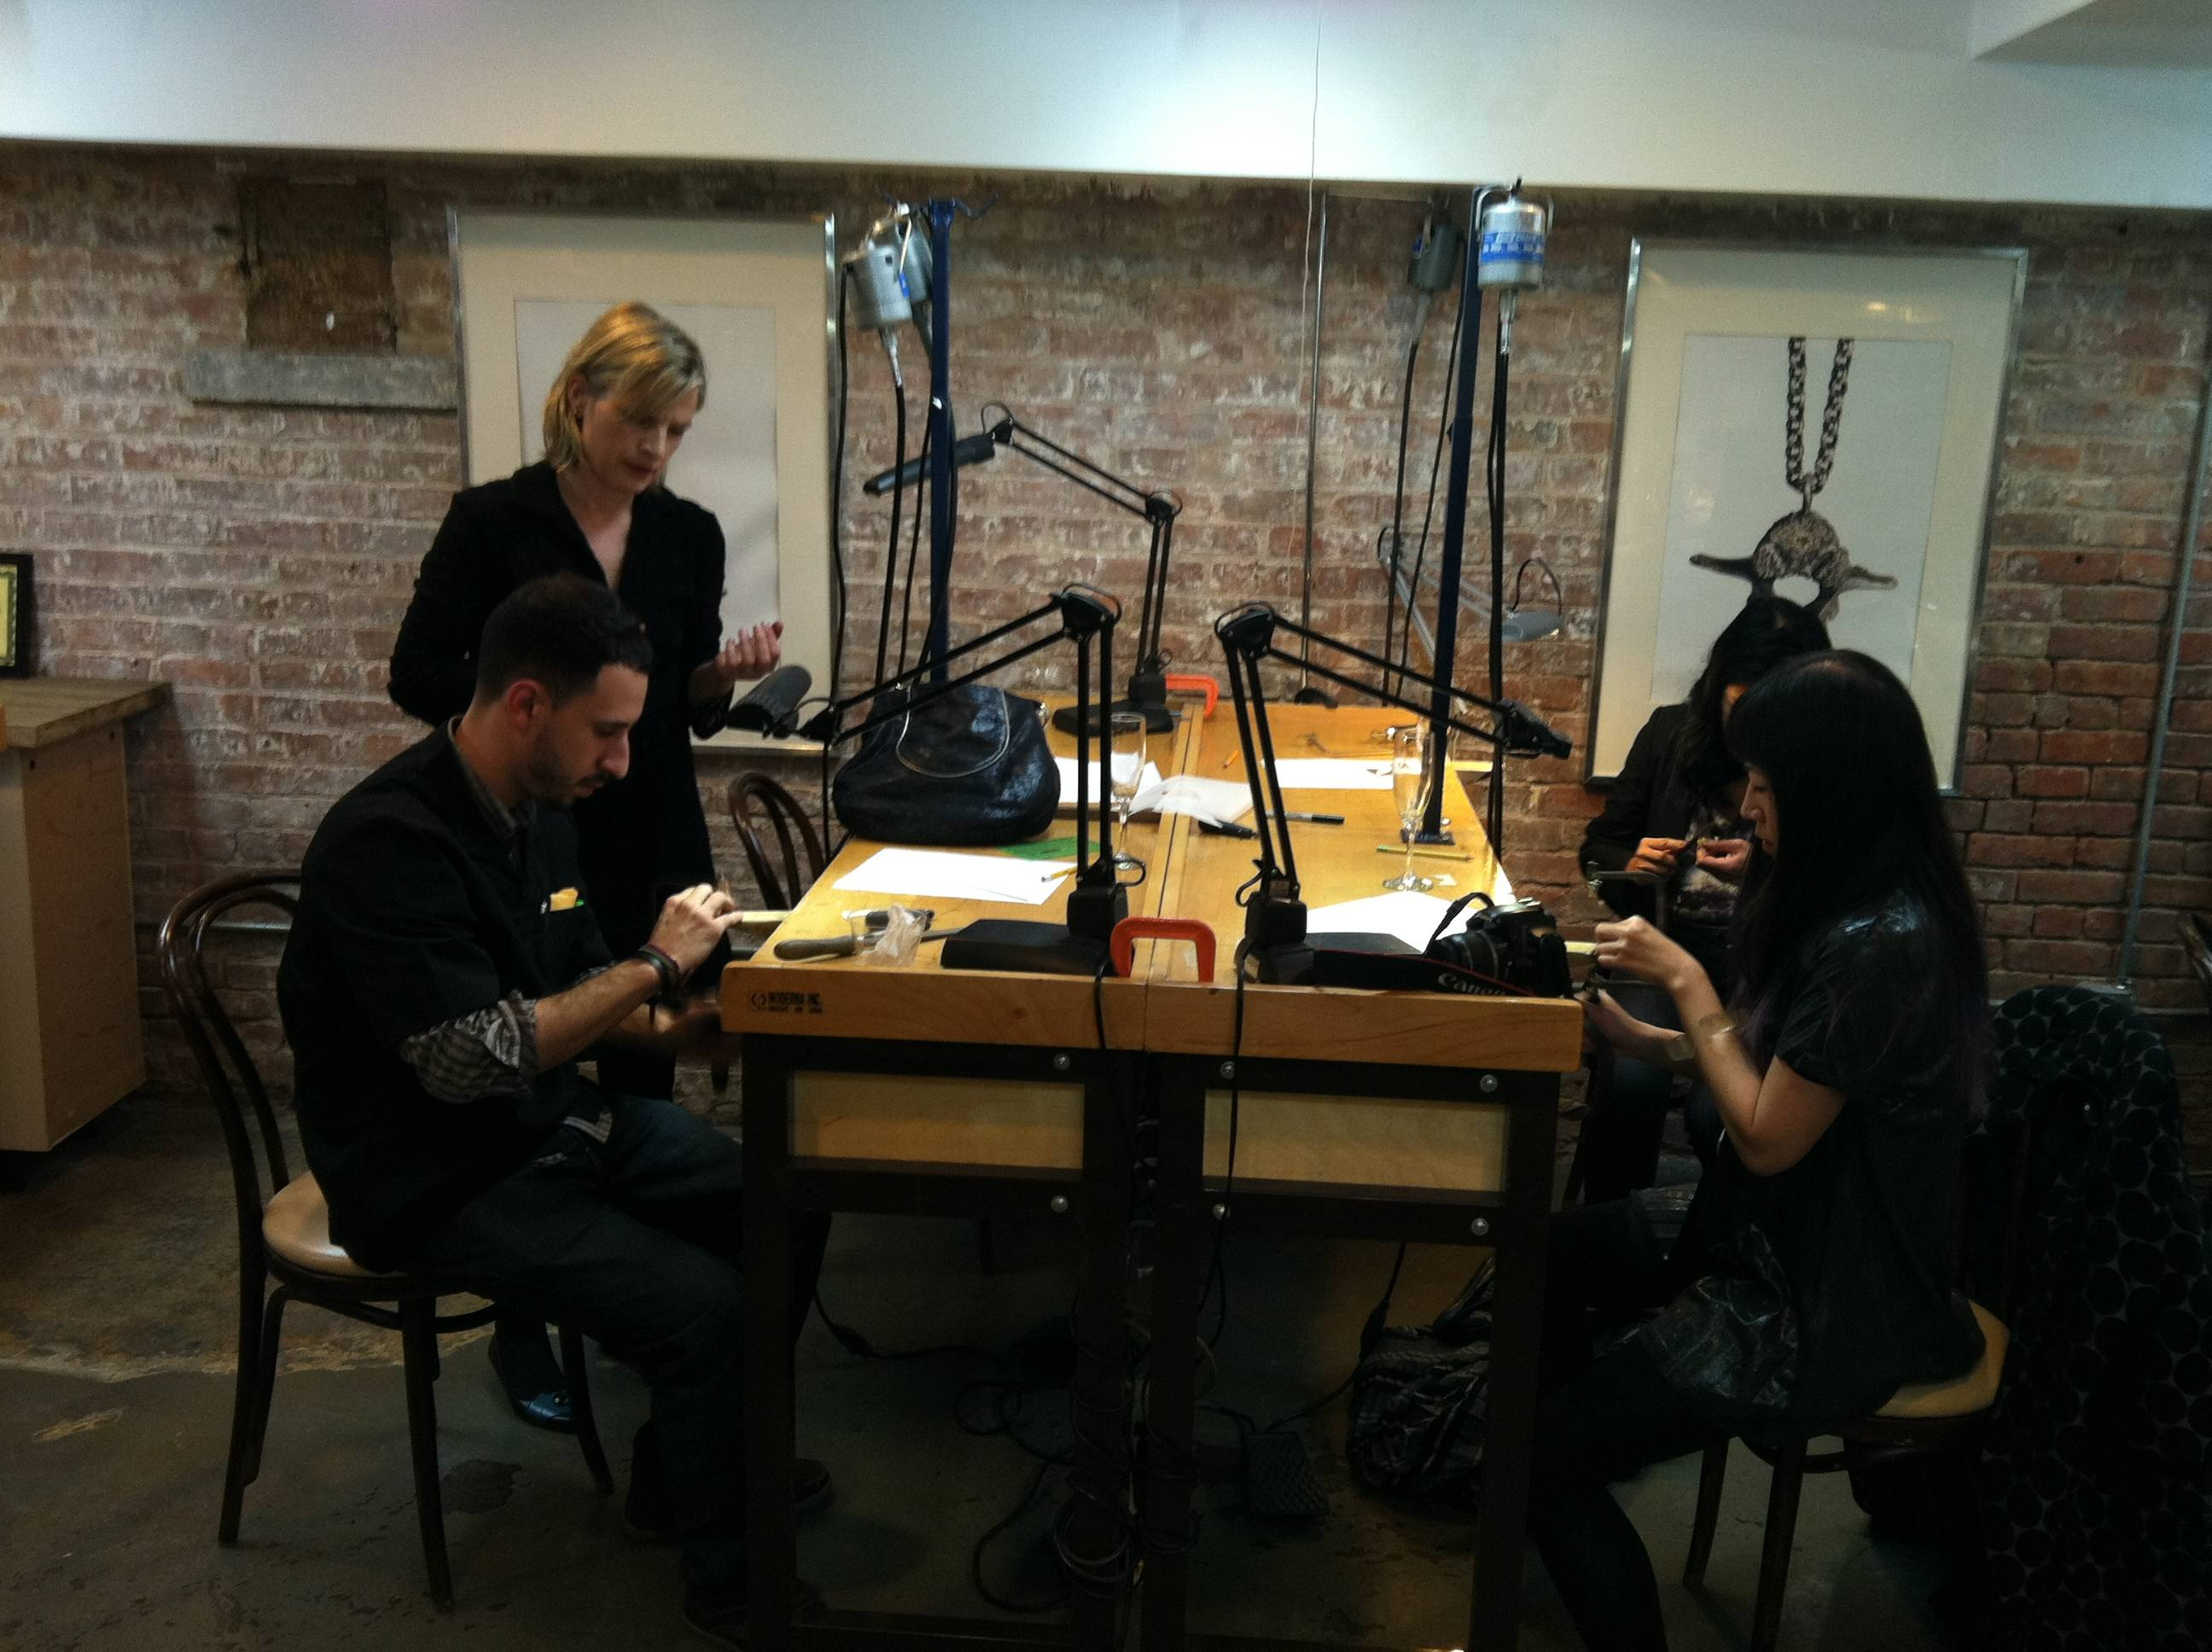 Kristin Hanson Diamond Atelier Hosts Fine Jewelry School Workshop